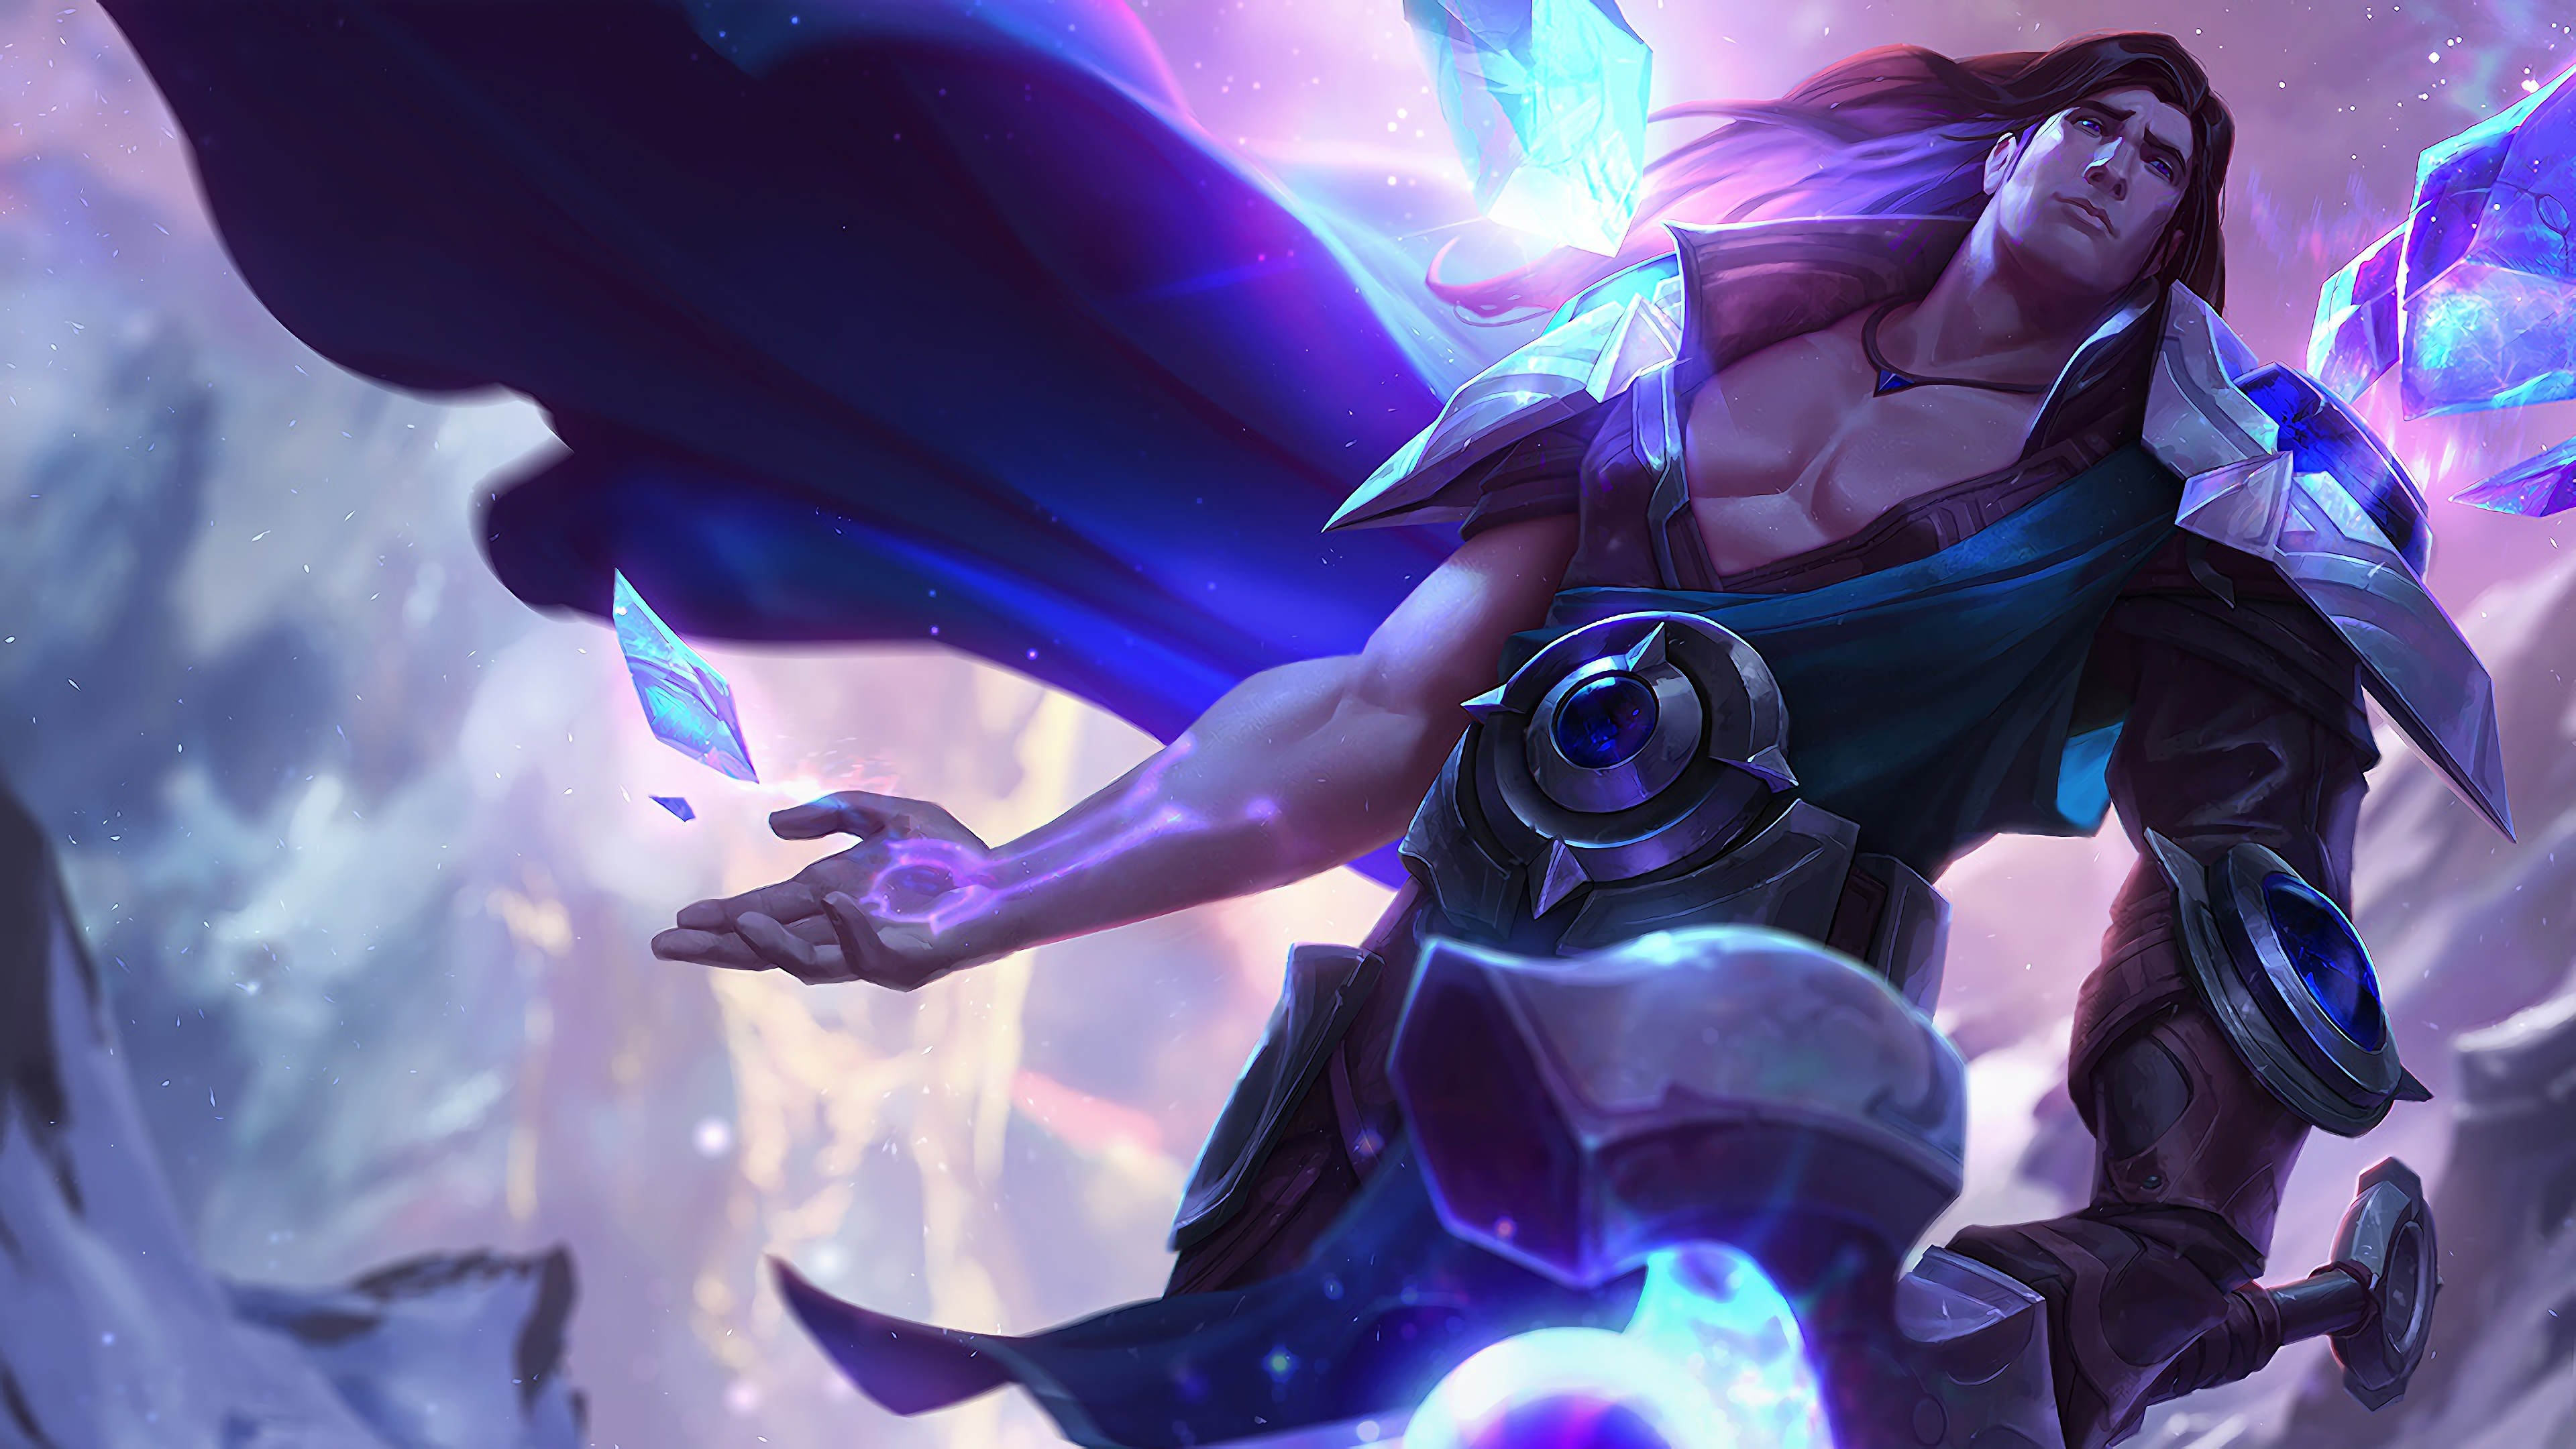 Taric LoL Splash Art League of Legends 4K 1331 3840x2160